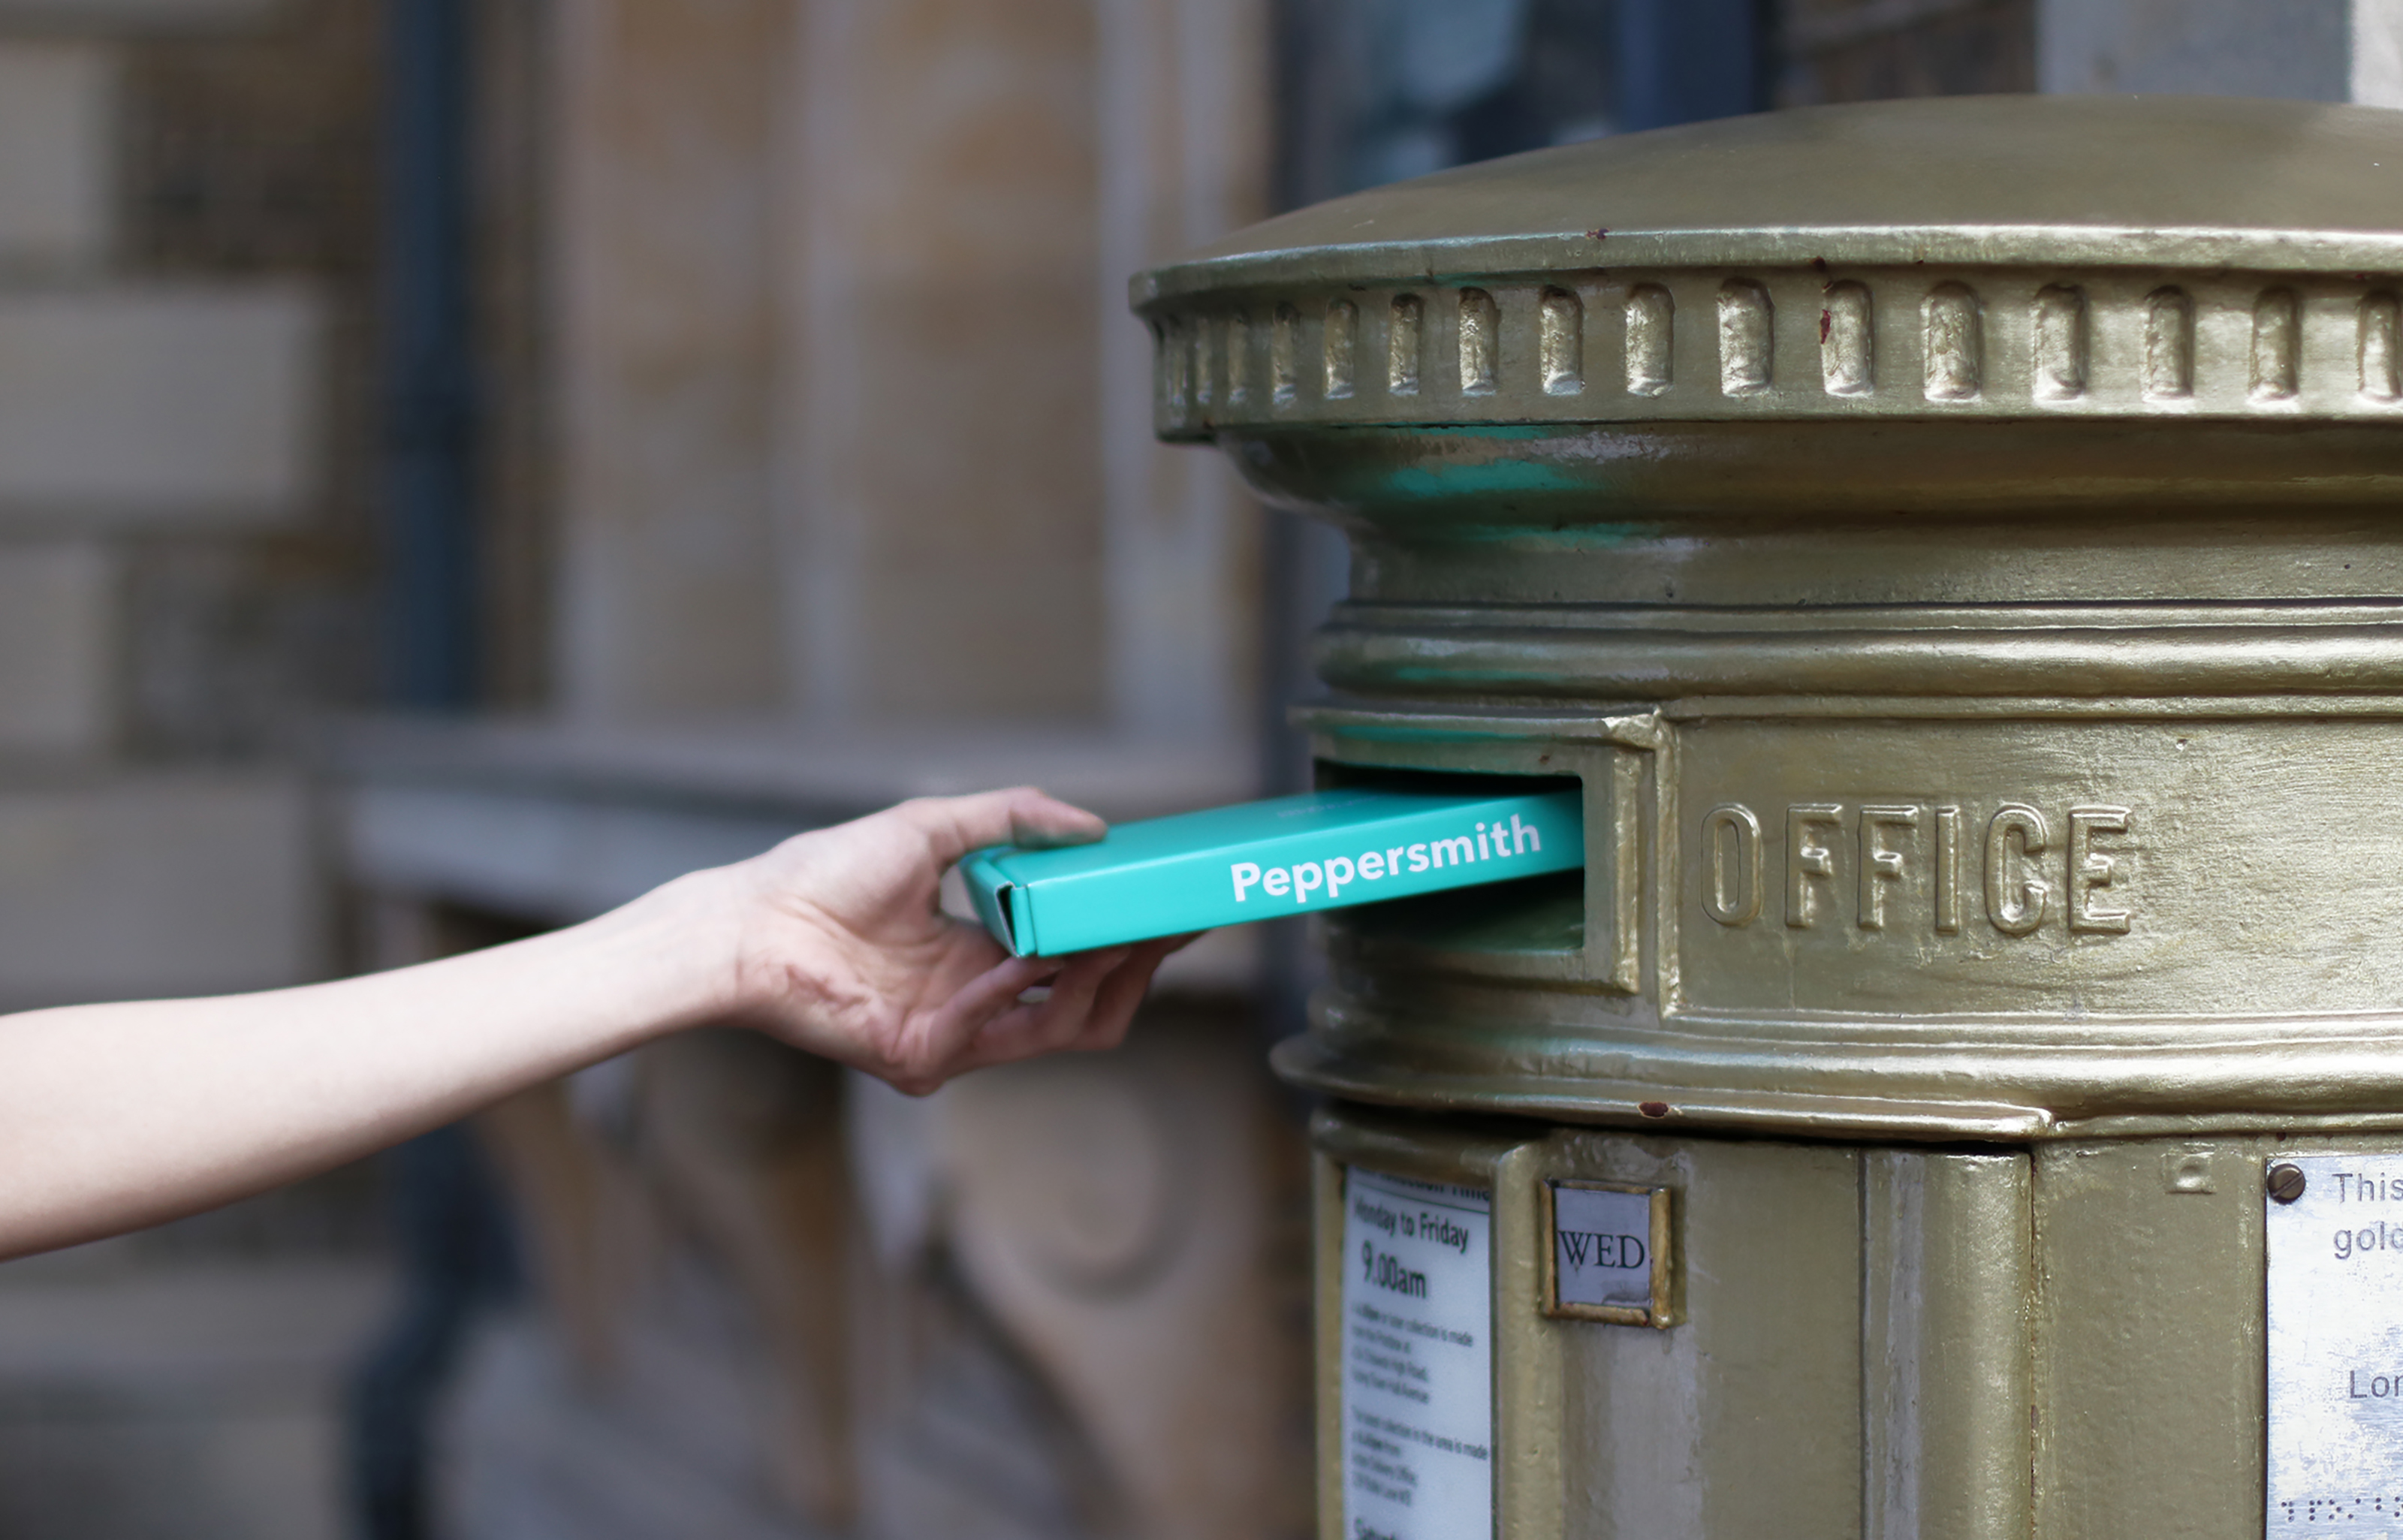 Peppersmith Postbox